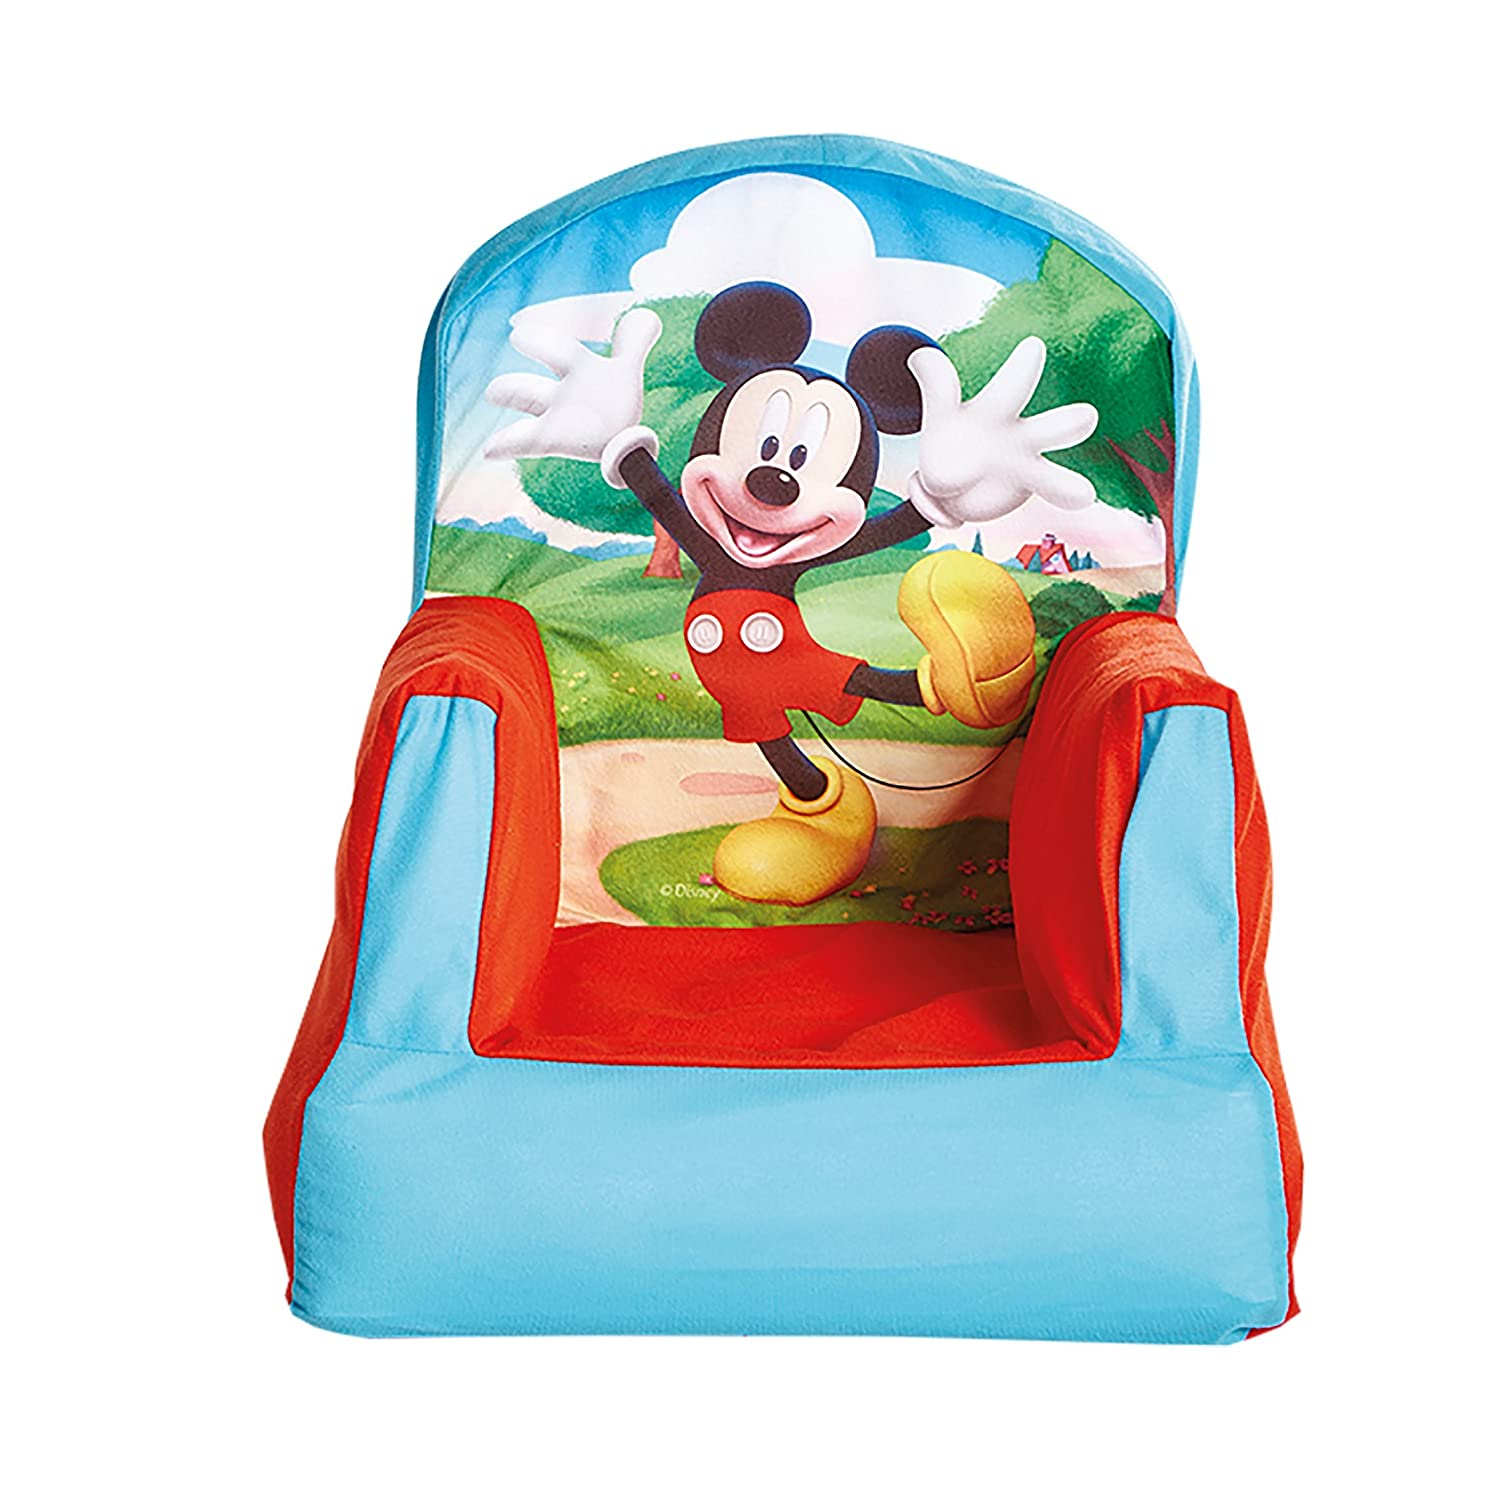 Disney Mickey Mouse Inflatable Chair For Kids: Amazon.co.uk: Kitchen U0026 Home